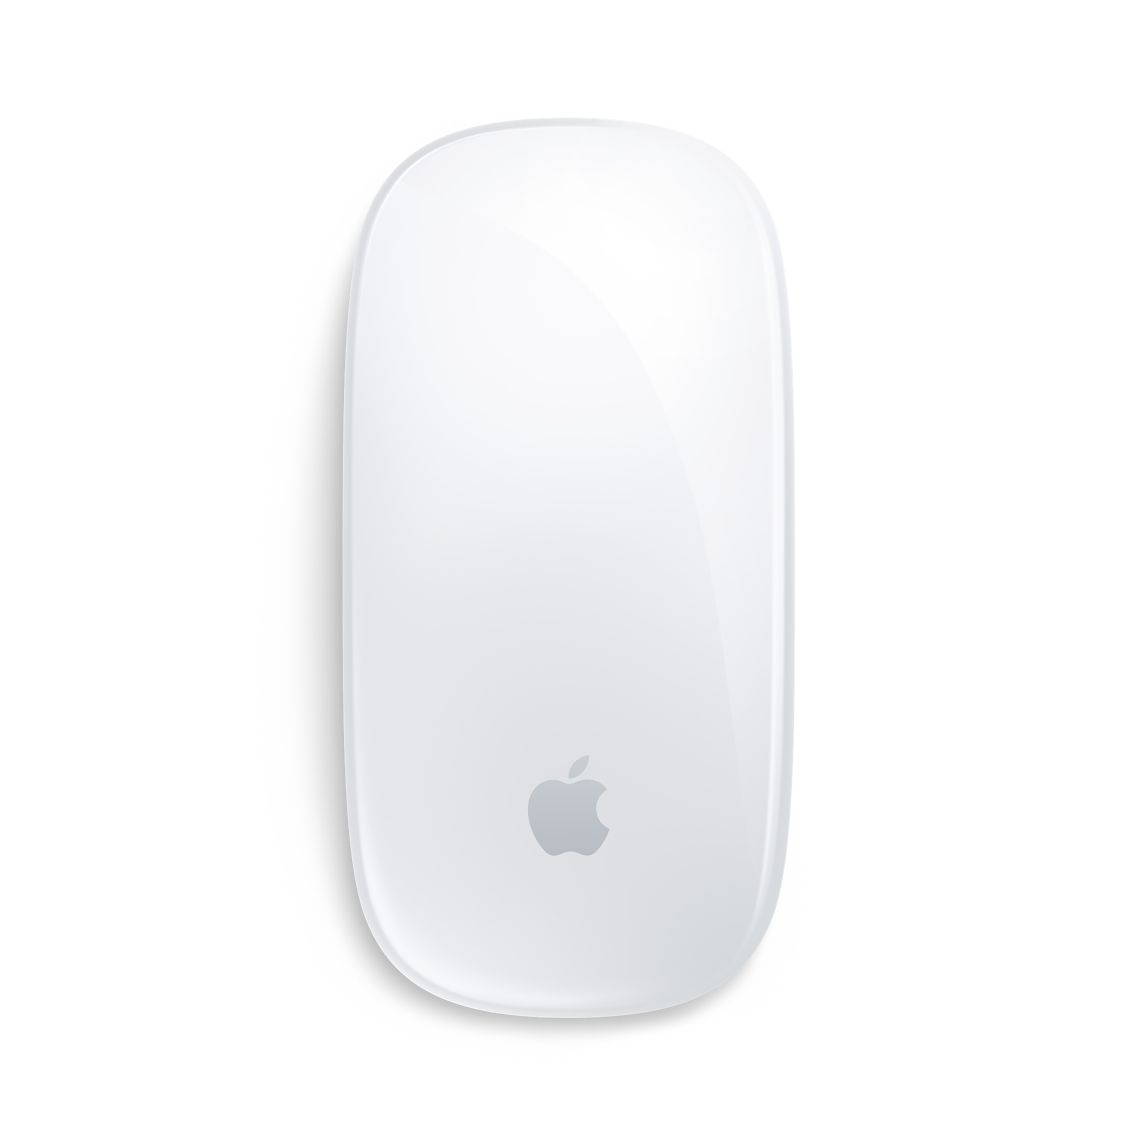 Magic Mouse 2